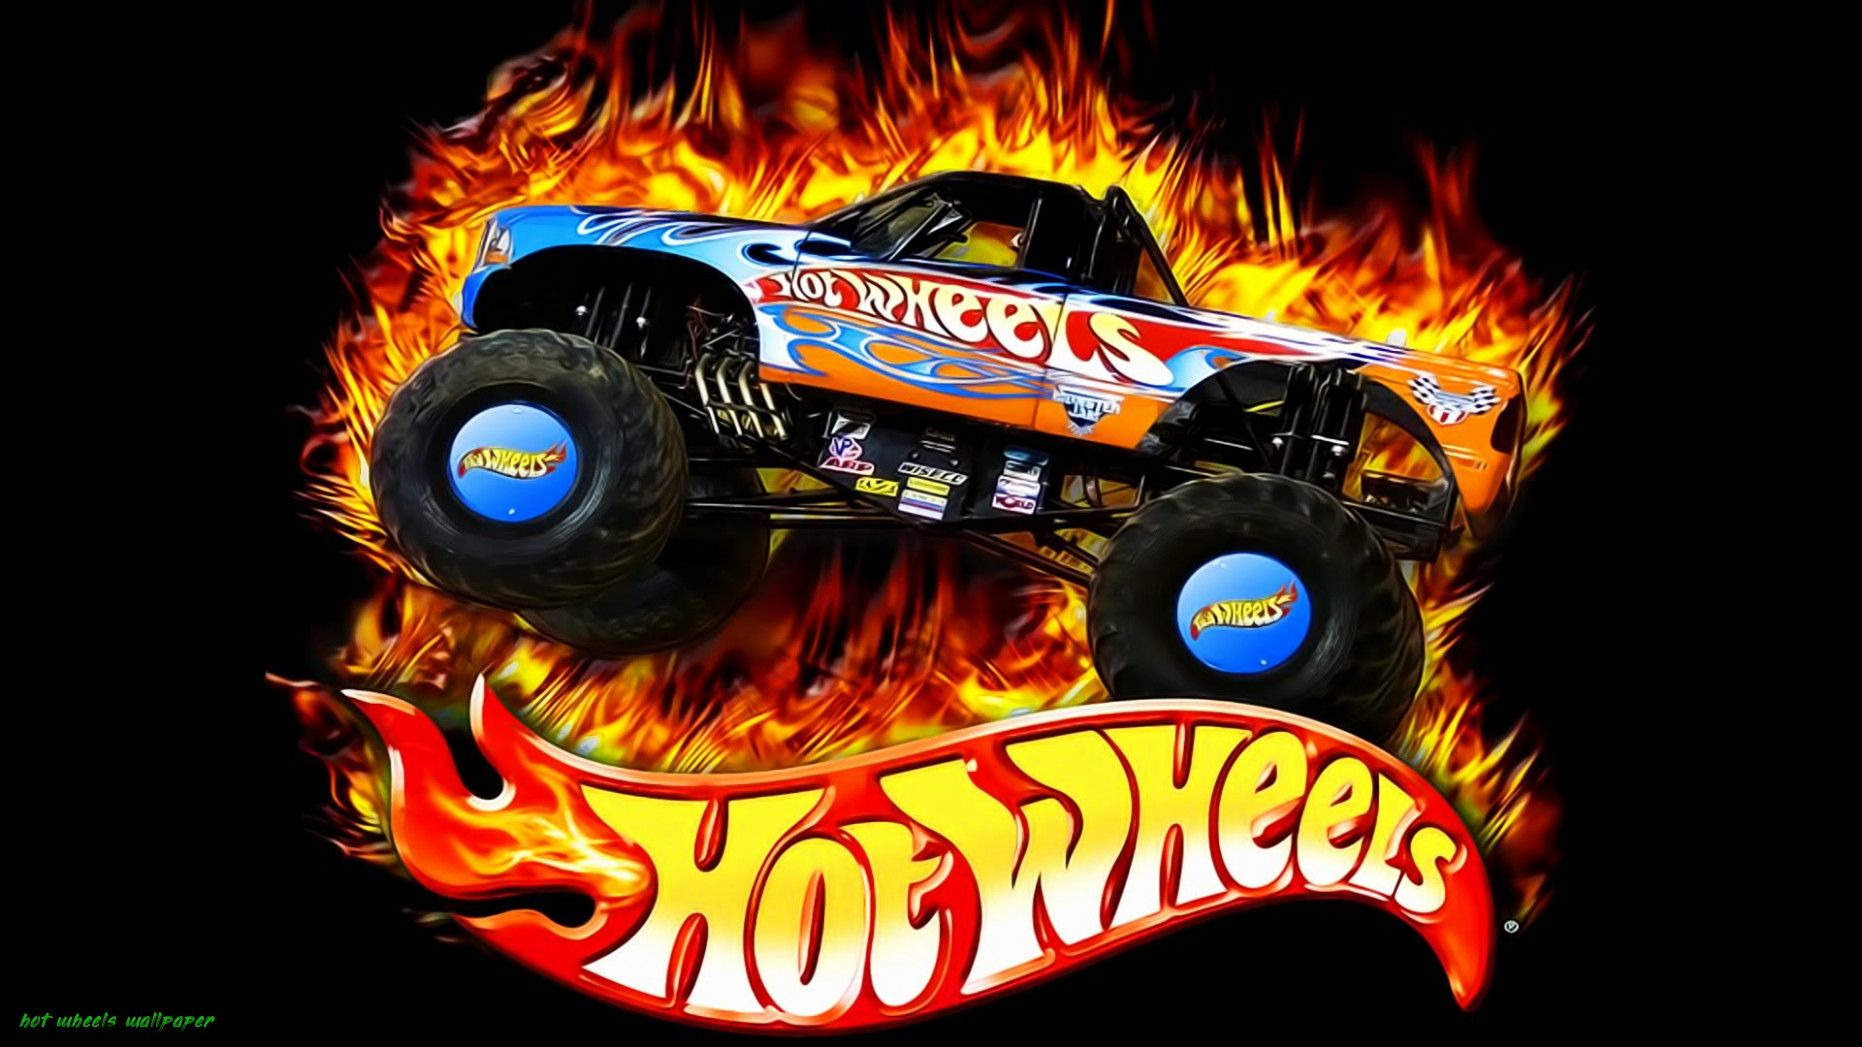 11 Things Nobody Told You About Hot Wheels Wallpaper Hot Wheels Wallpaper Hot Wheels Hot Wheels Cars Hot Wheels Birthday